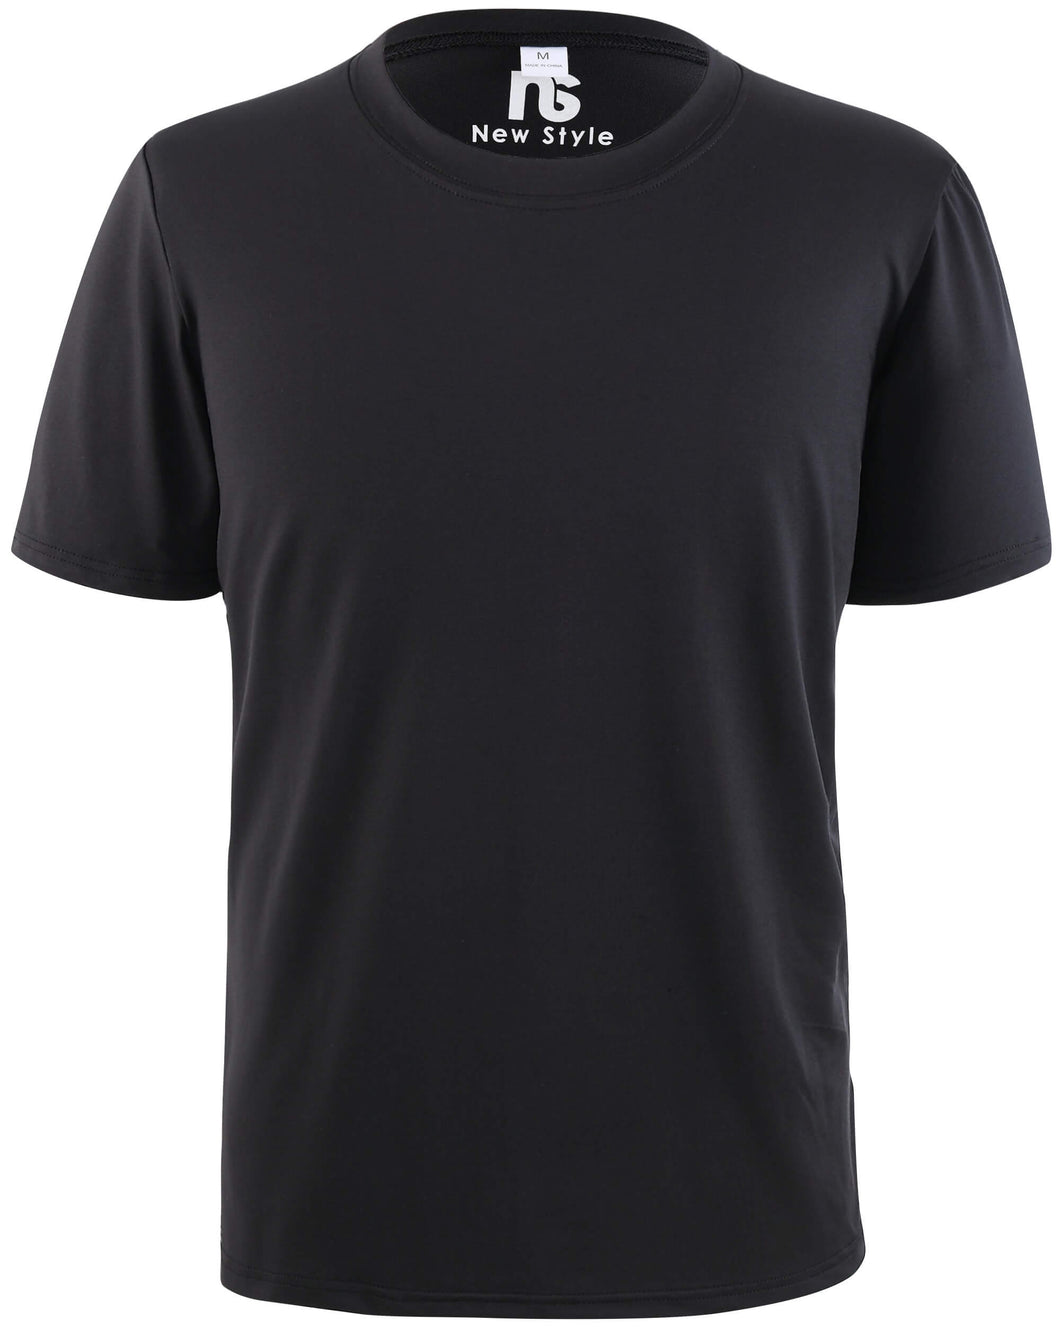 New Style Premium Moisture-Wicking All-Sport Short-Sleeve T-Shirt Front Black